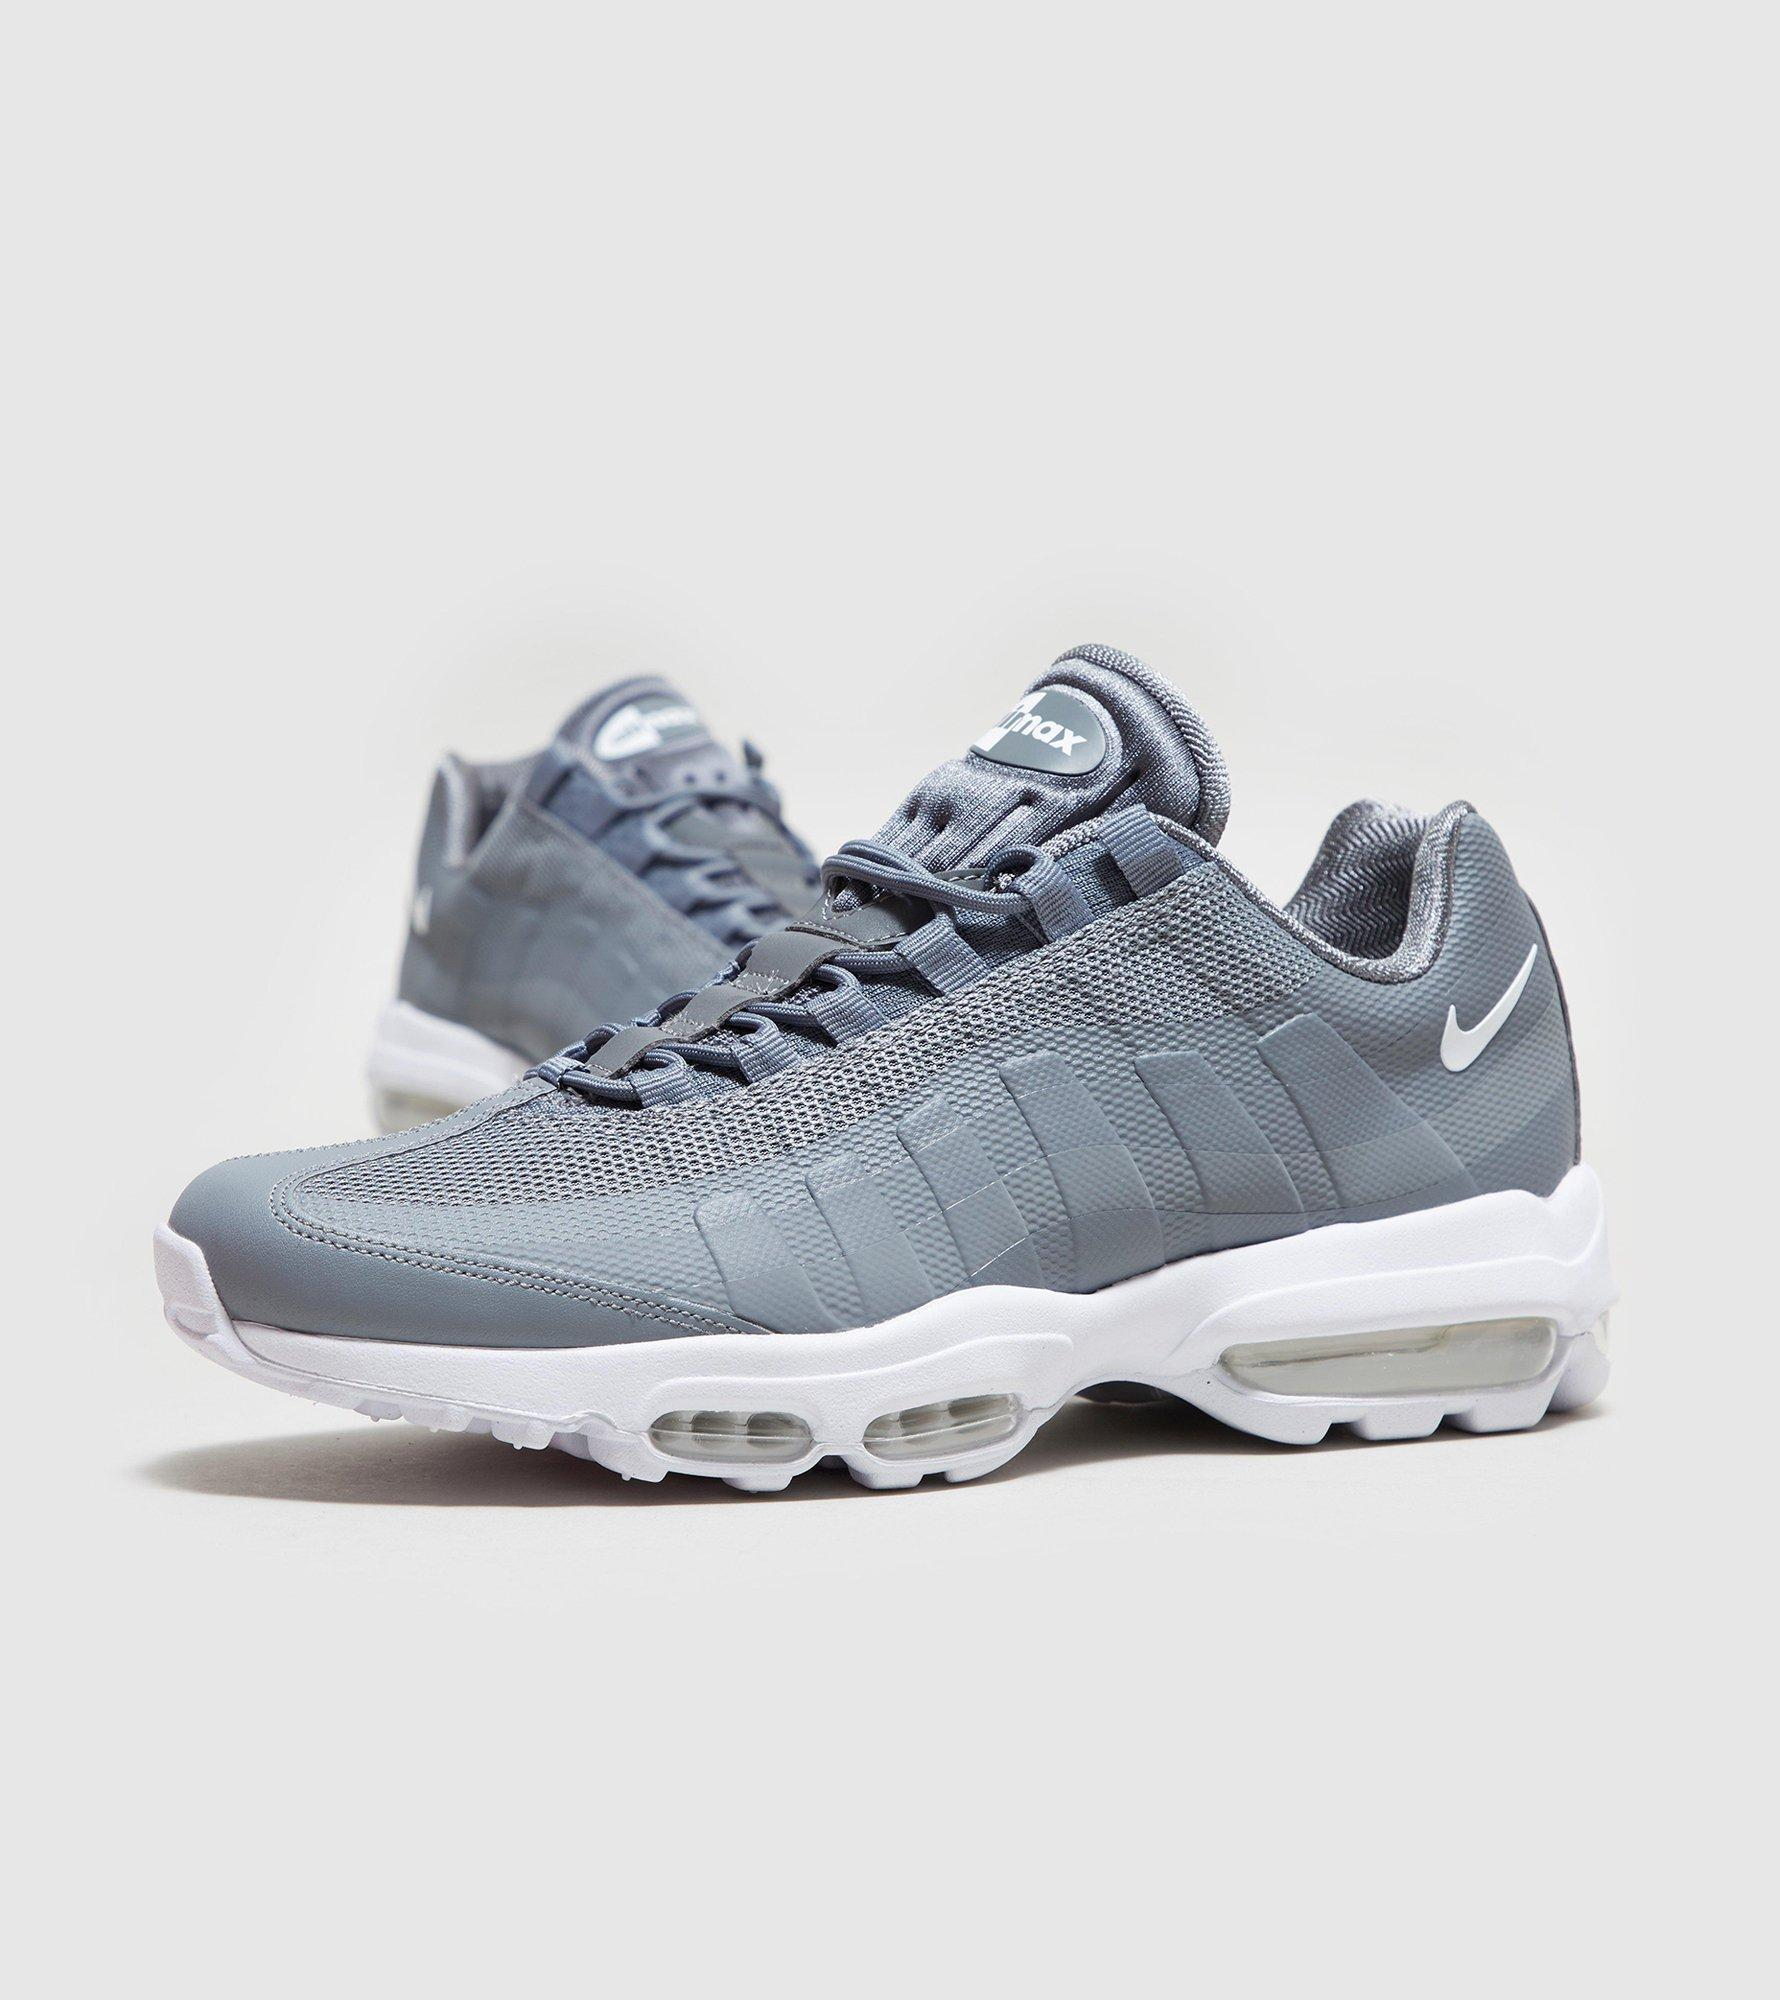 lyst nike air max 95 ultra essential in gray for men. Black Bedroom Furniture Sets. Home Design Ideas